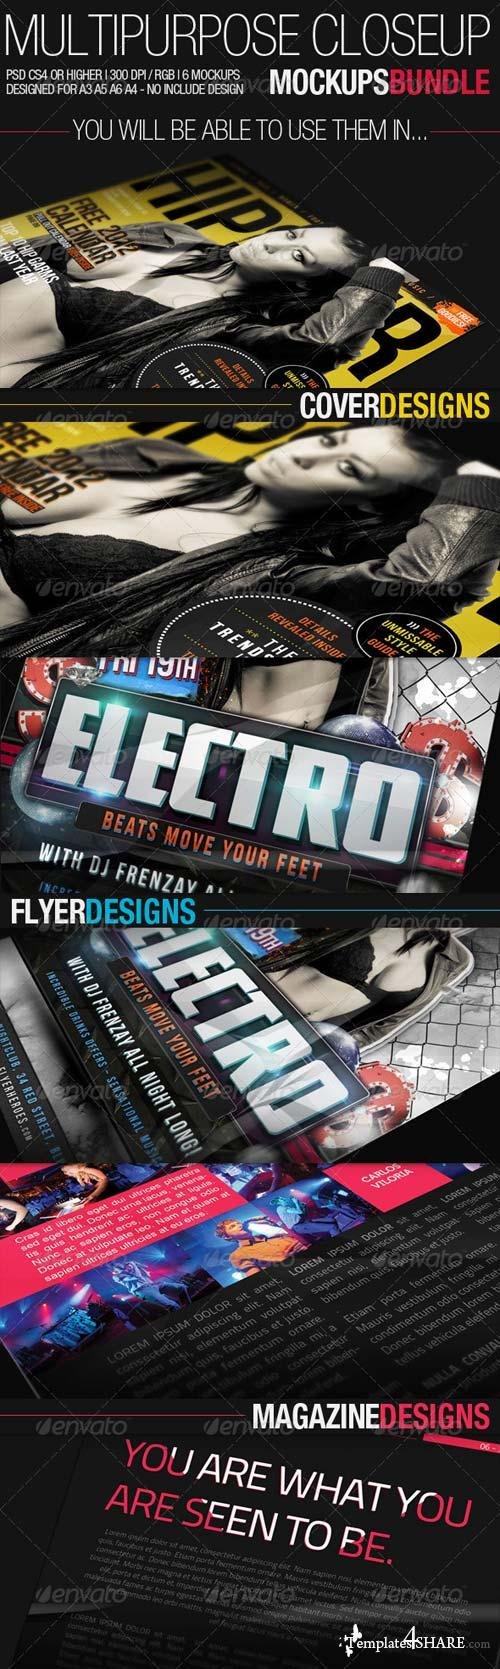 GraphicRiver Multipurpose Closeup Mockups Bundle